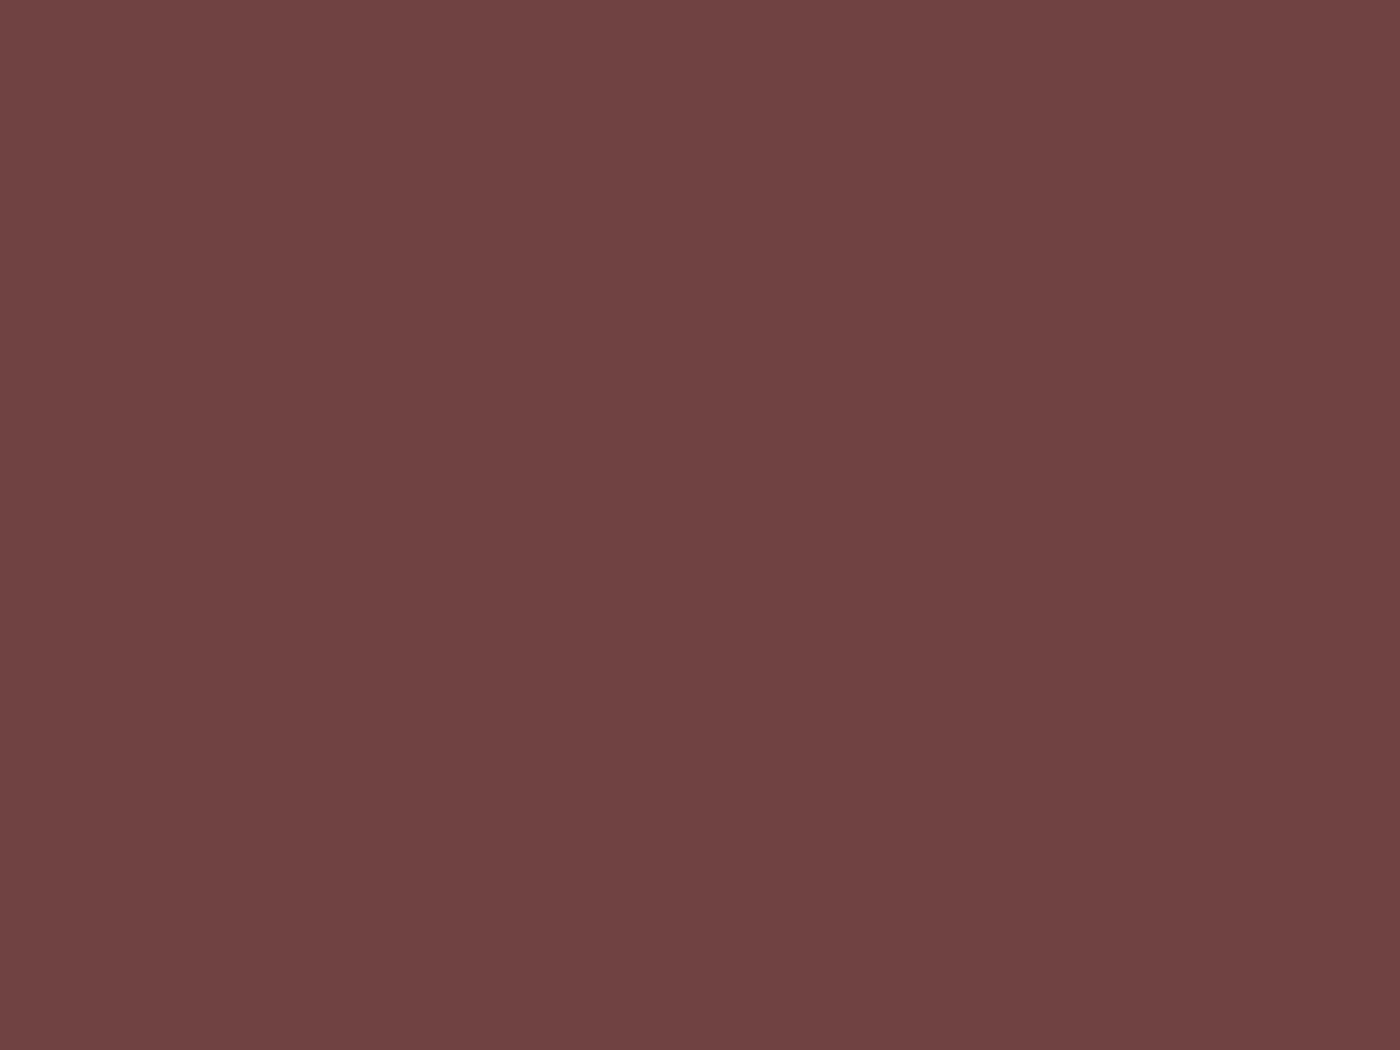 1400x1050 Deep Coffee Solid Color Background